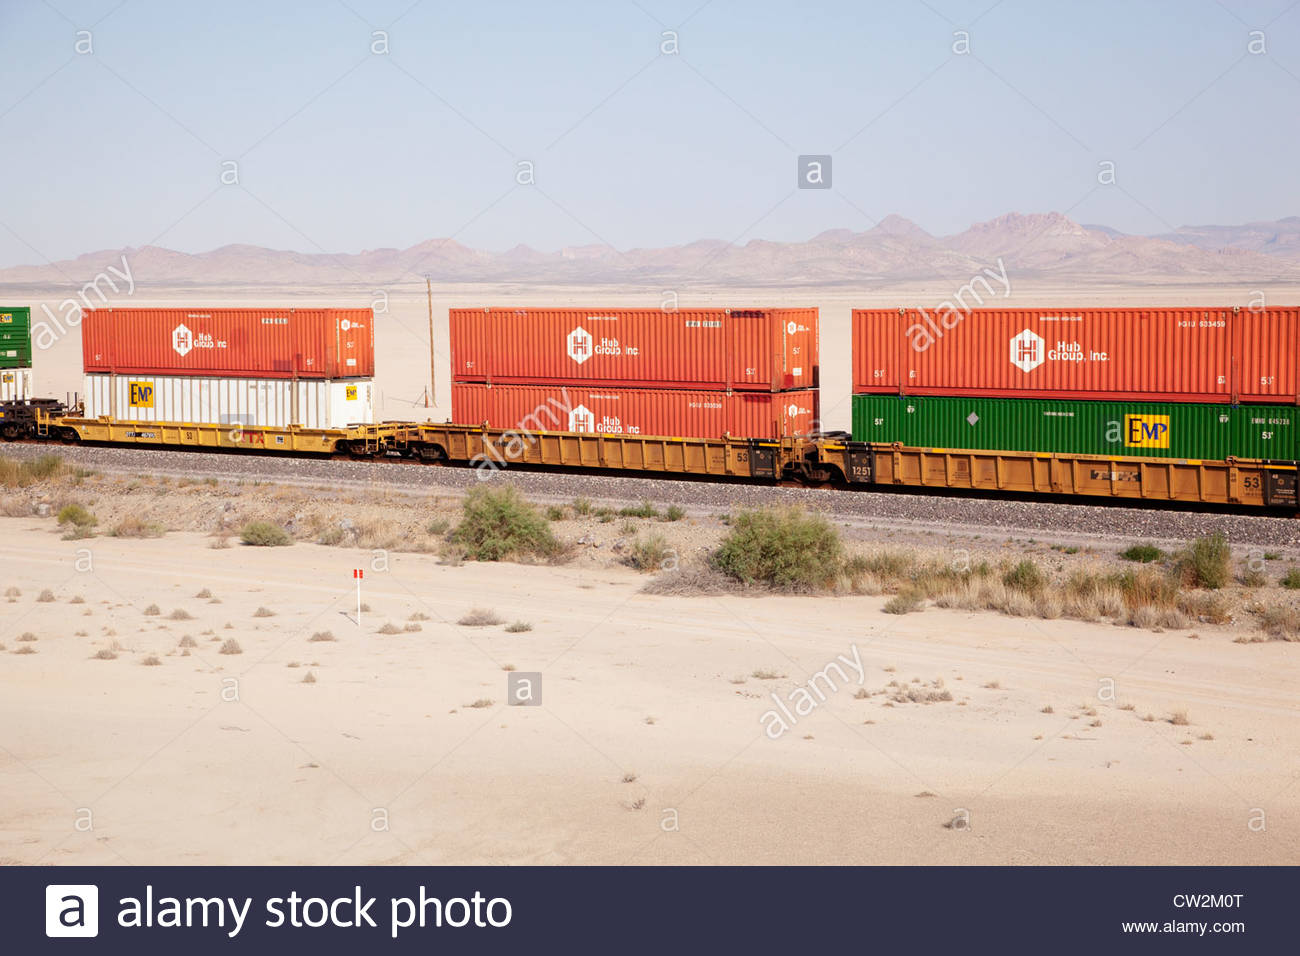 """Shipping containers on rail cars """"New Mexico"""" Stock Photo"""